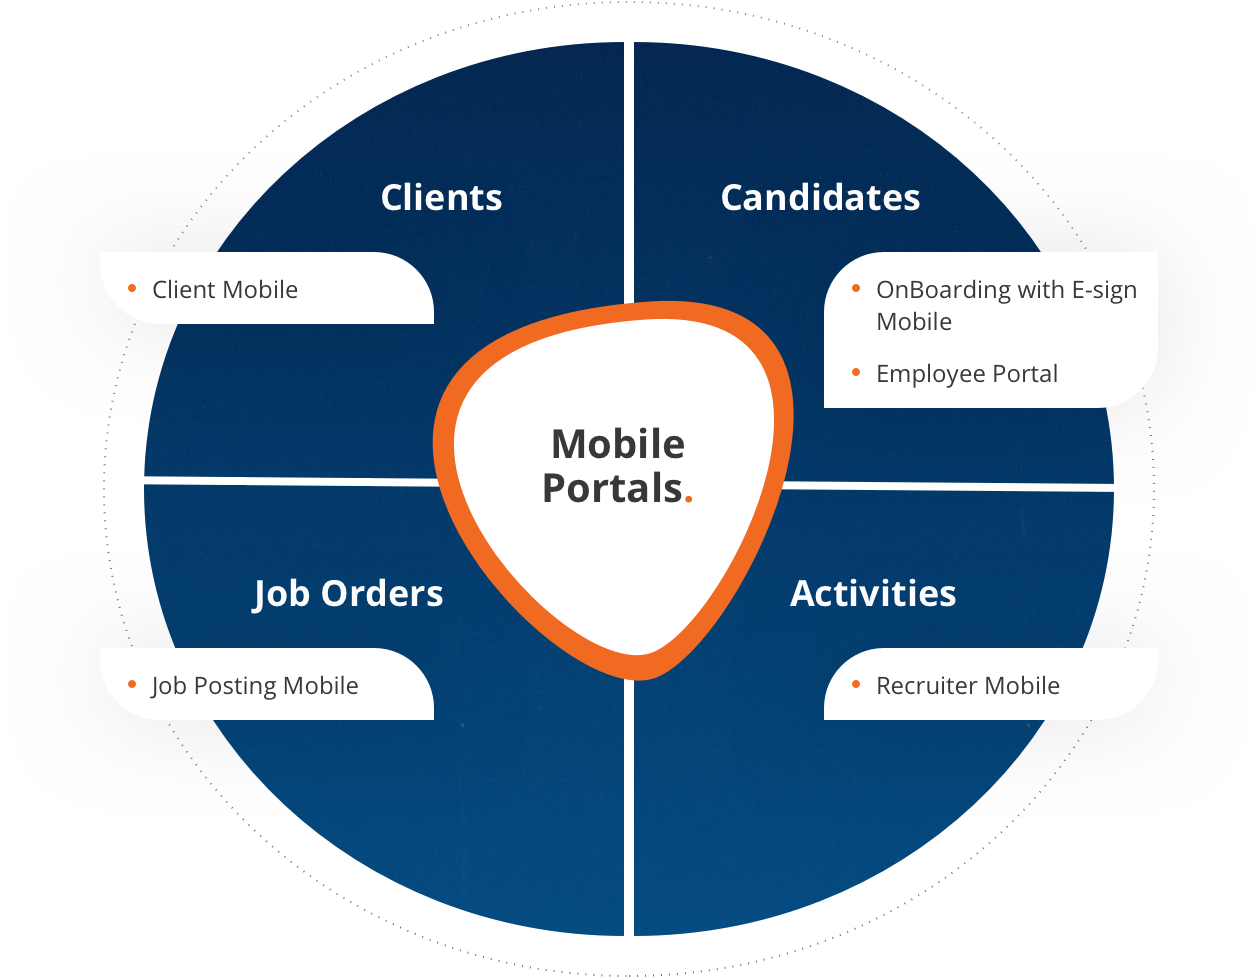 Custom diagram illustrating the Mobile Portal functionality